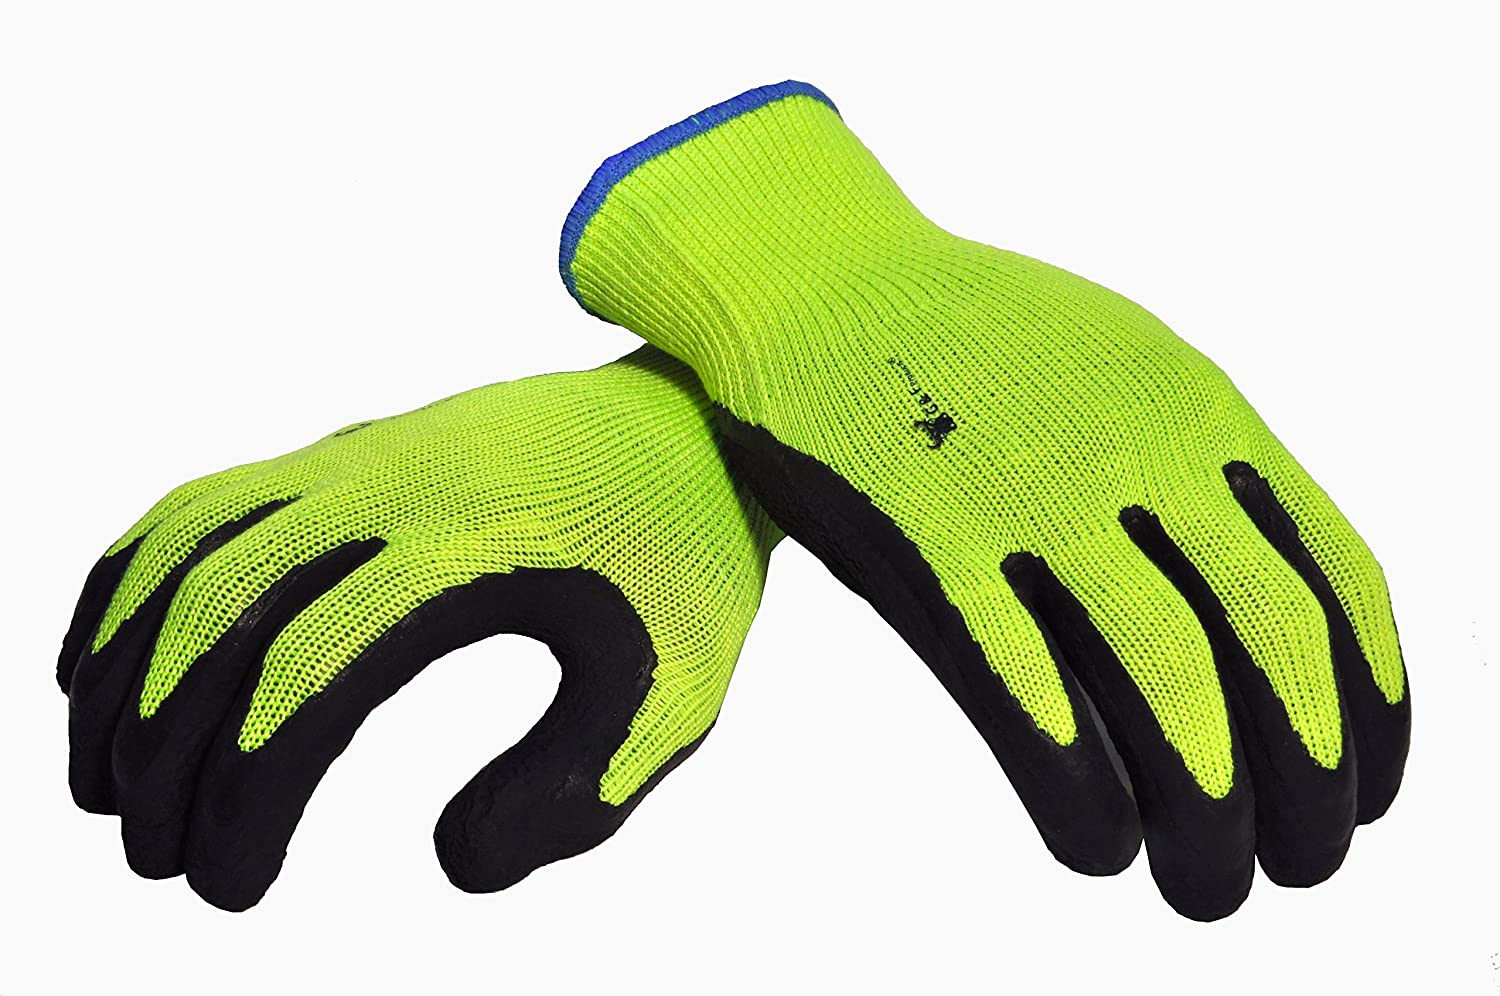 G /& F 1516XL-3 Premium High Visibility Work Gloves for General Purpose Garden Gloves Men and Women Work Gloves XLarge 3 Pair Pack MicroFoam Double Textured Latex Coated Work Gloves